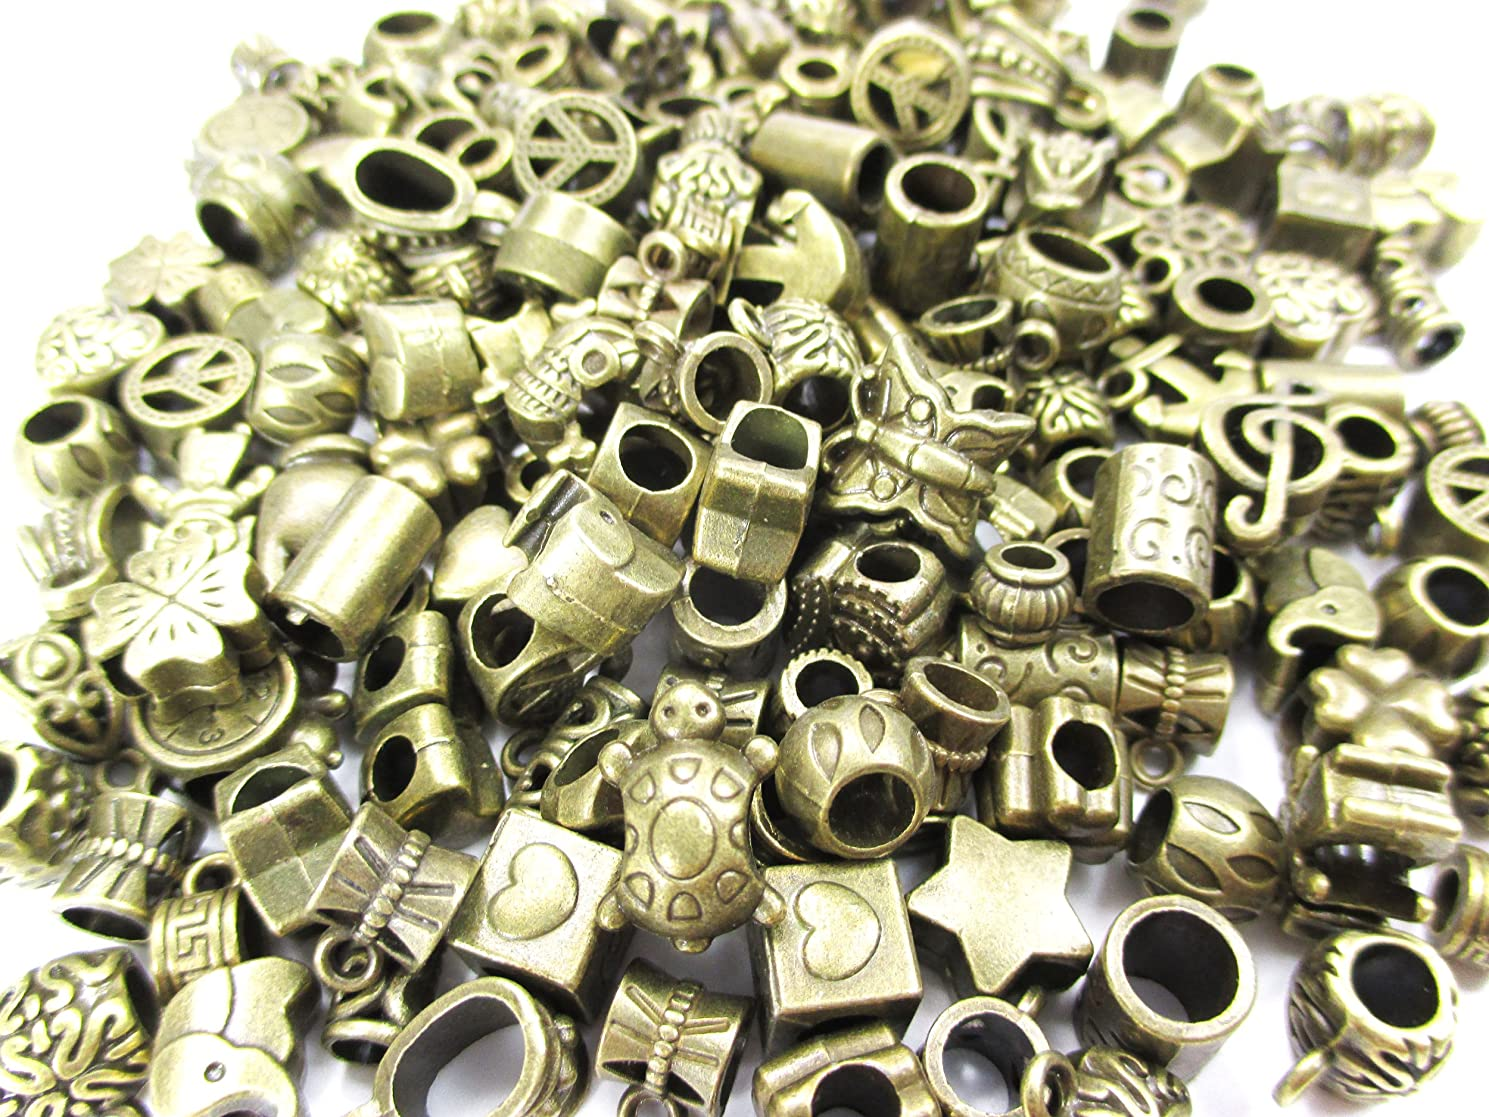 All In One 50gram Assorted Antique Bronze Large Hole Beads Charms Findings for Jewelry Making Bracelet Necklace Pendant